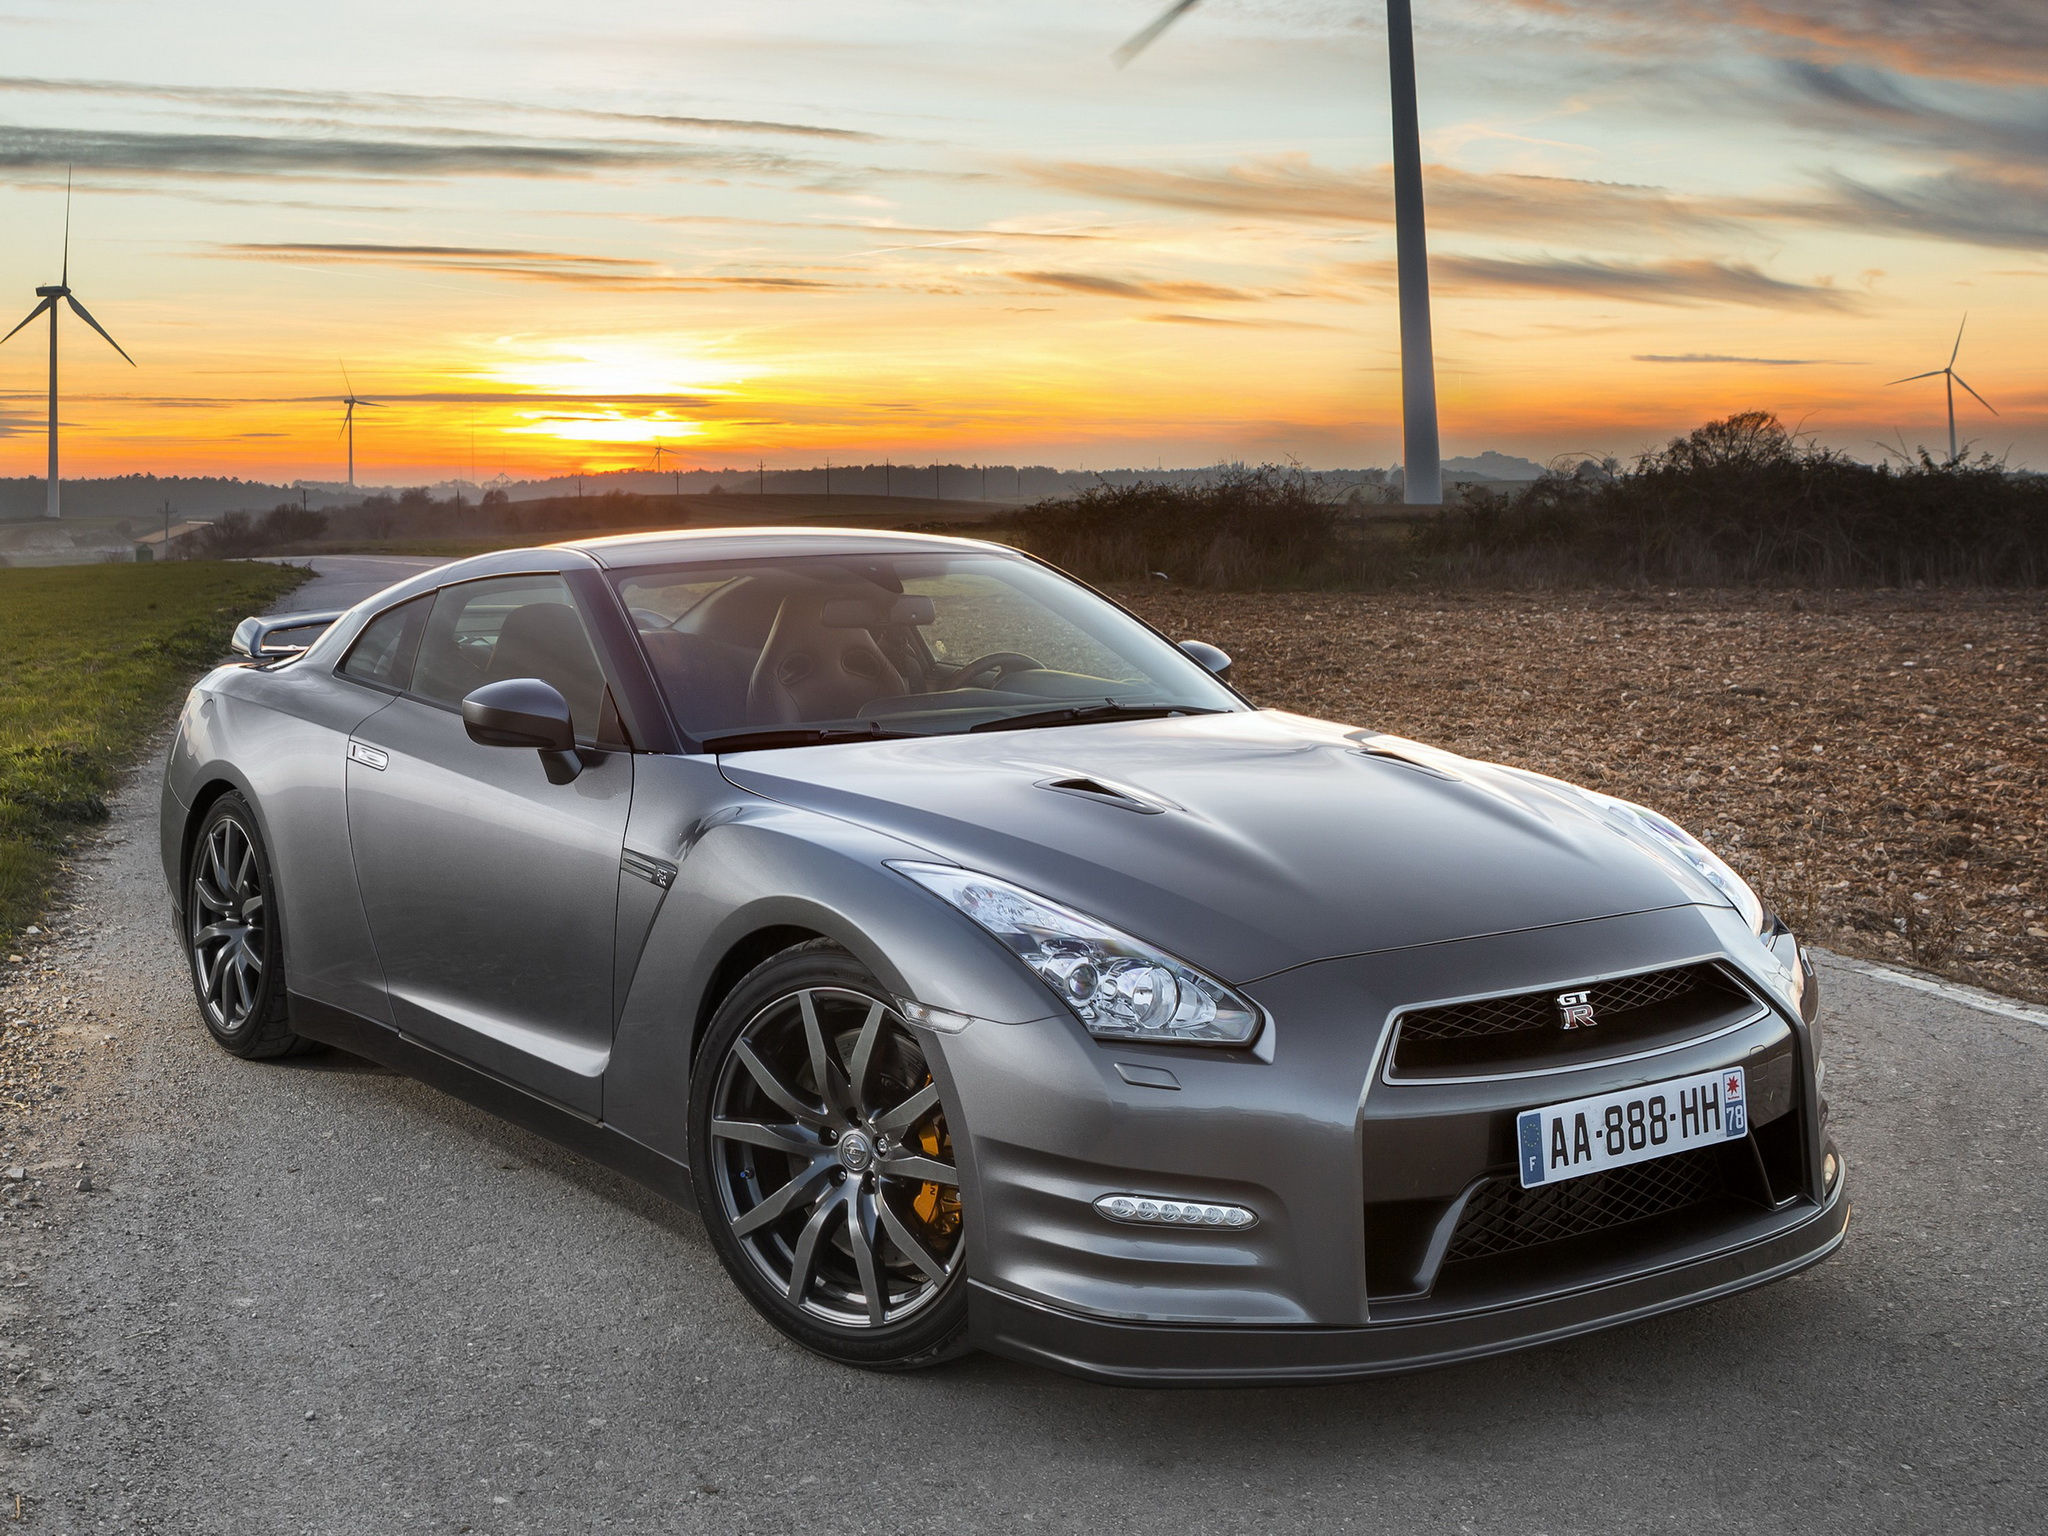 2012 nissan gt r premium edition r35 supercar wallpaper 2048x1536 149224 wallpaperup. Black Bedroom Furniture Sets. Home Design Ideas